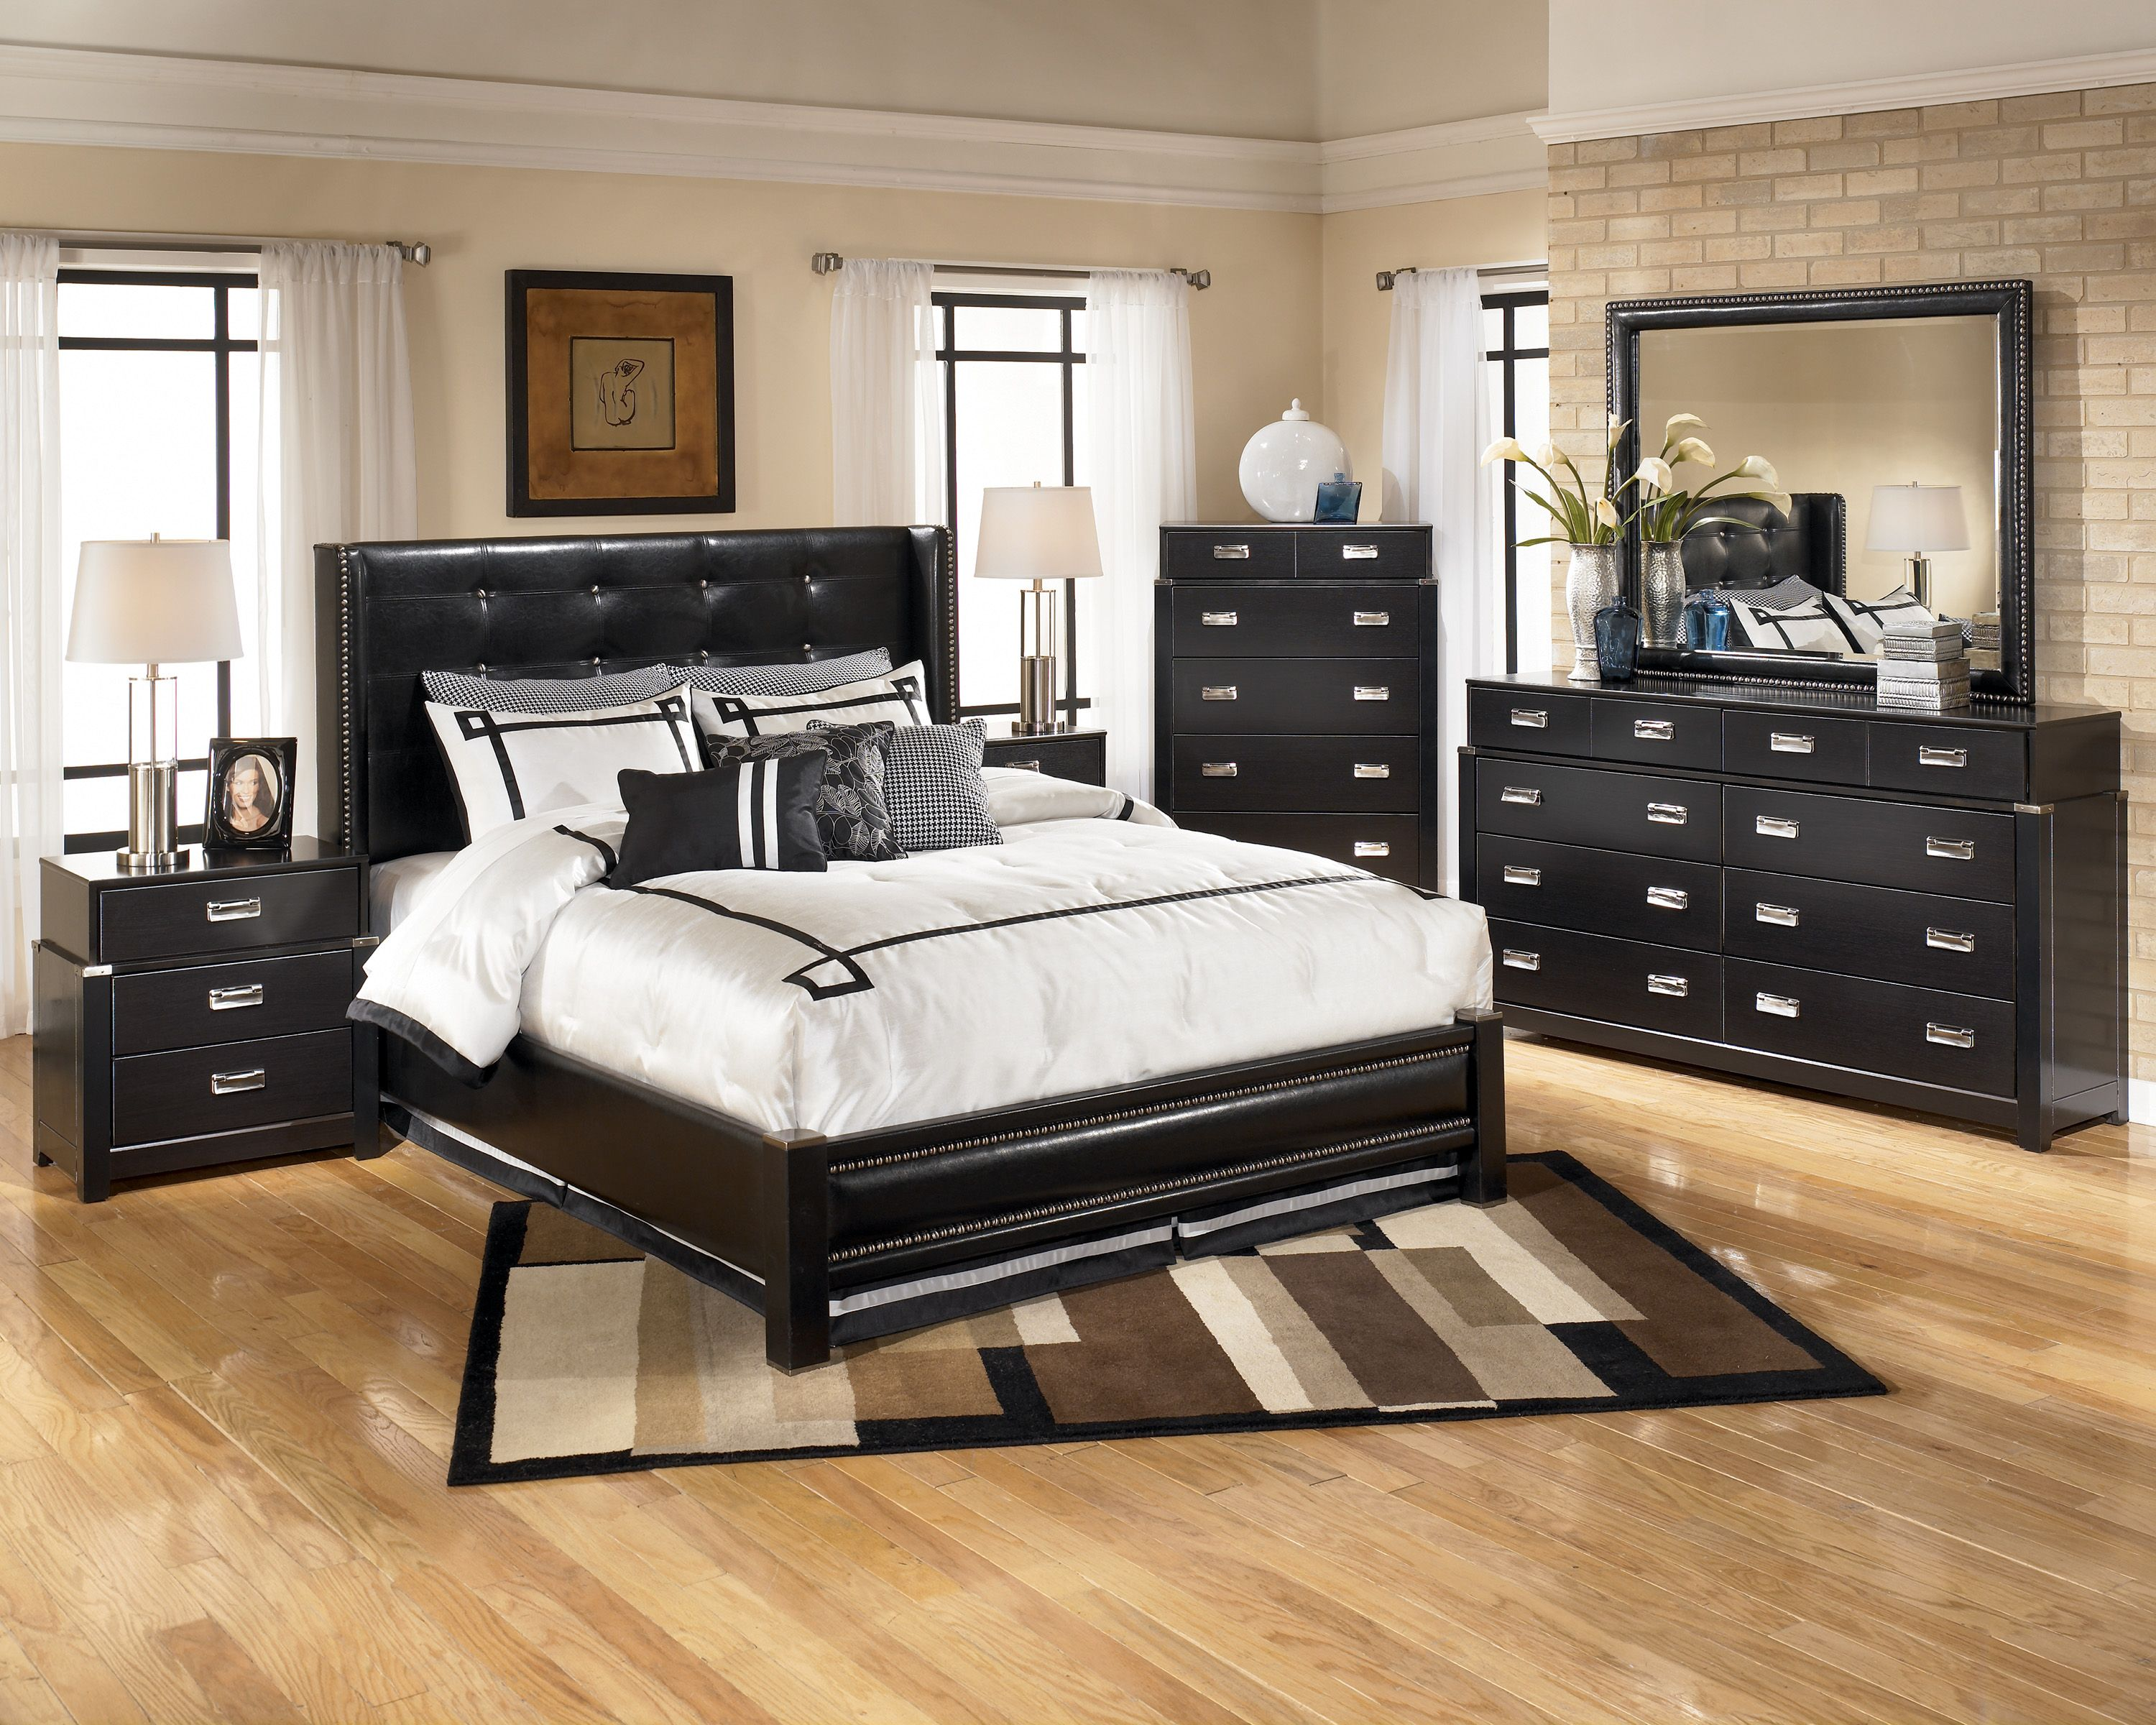 Awesome Bedroom Dresser Sets With Dressers Mirror